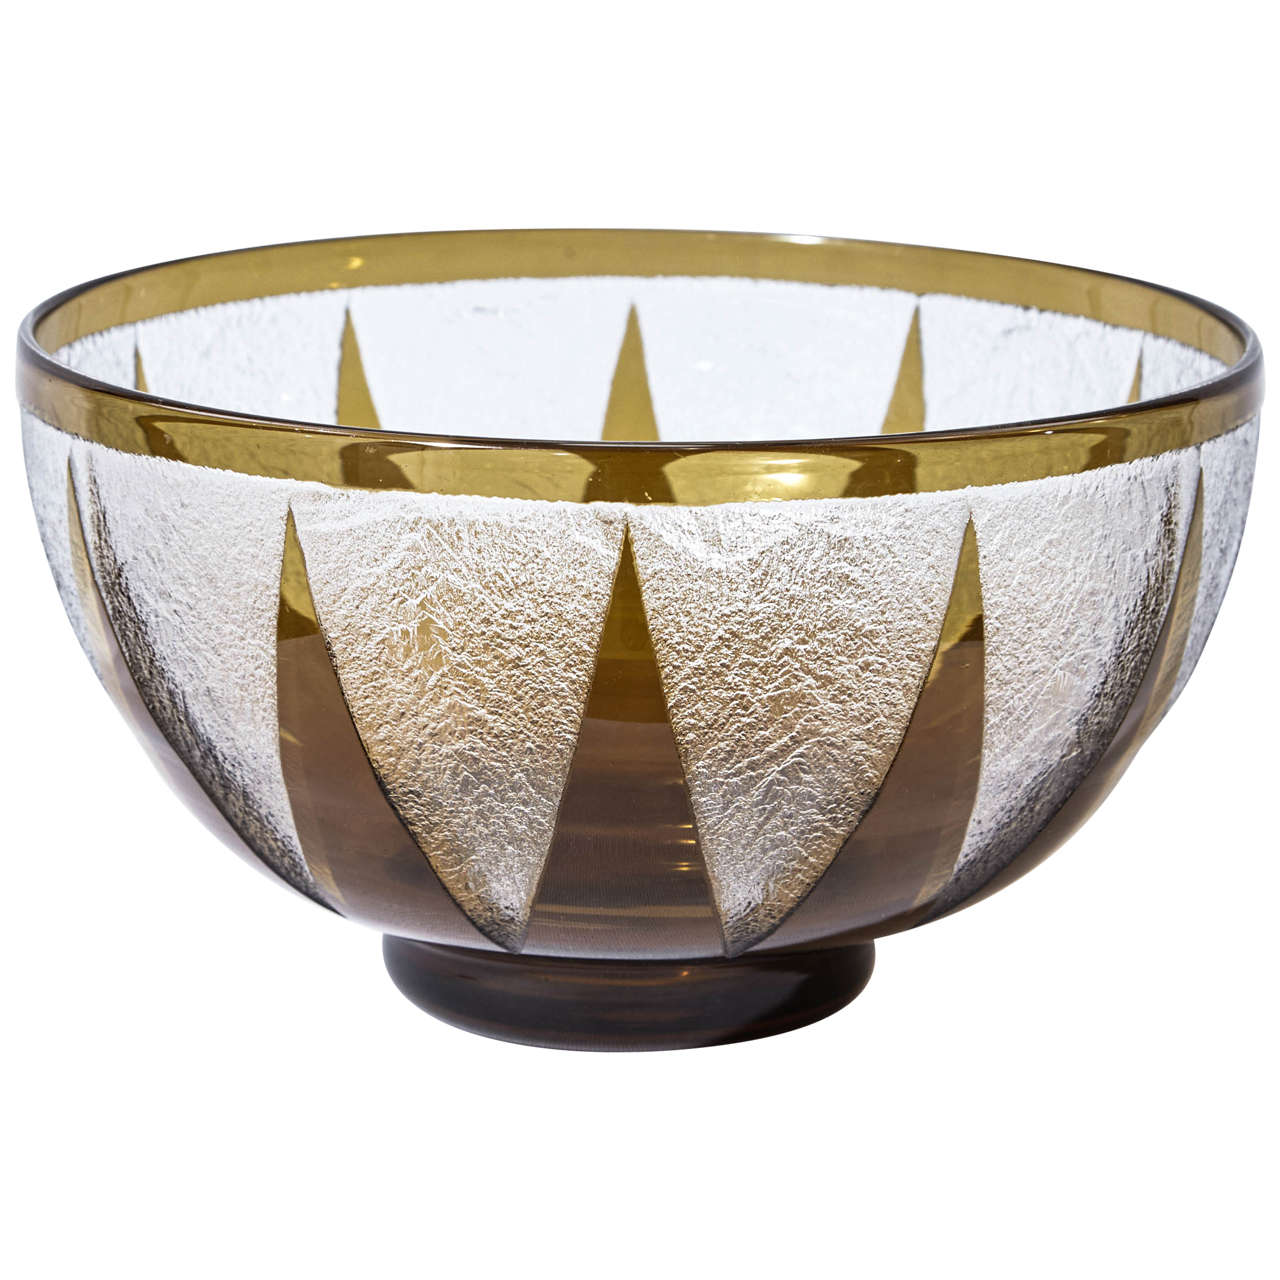 Art Baskets For Sale : Daum art deco bowl for sale at stdibs